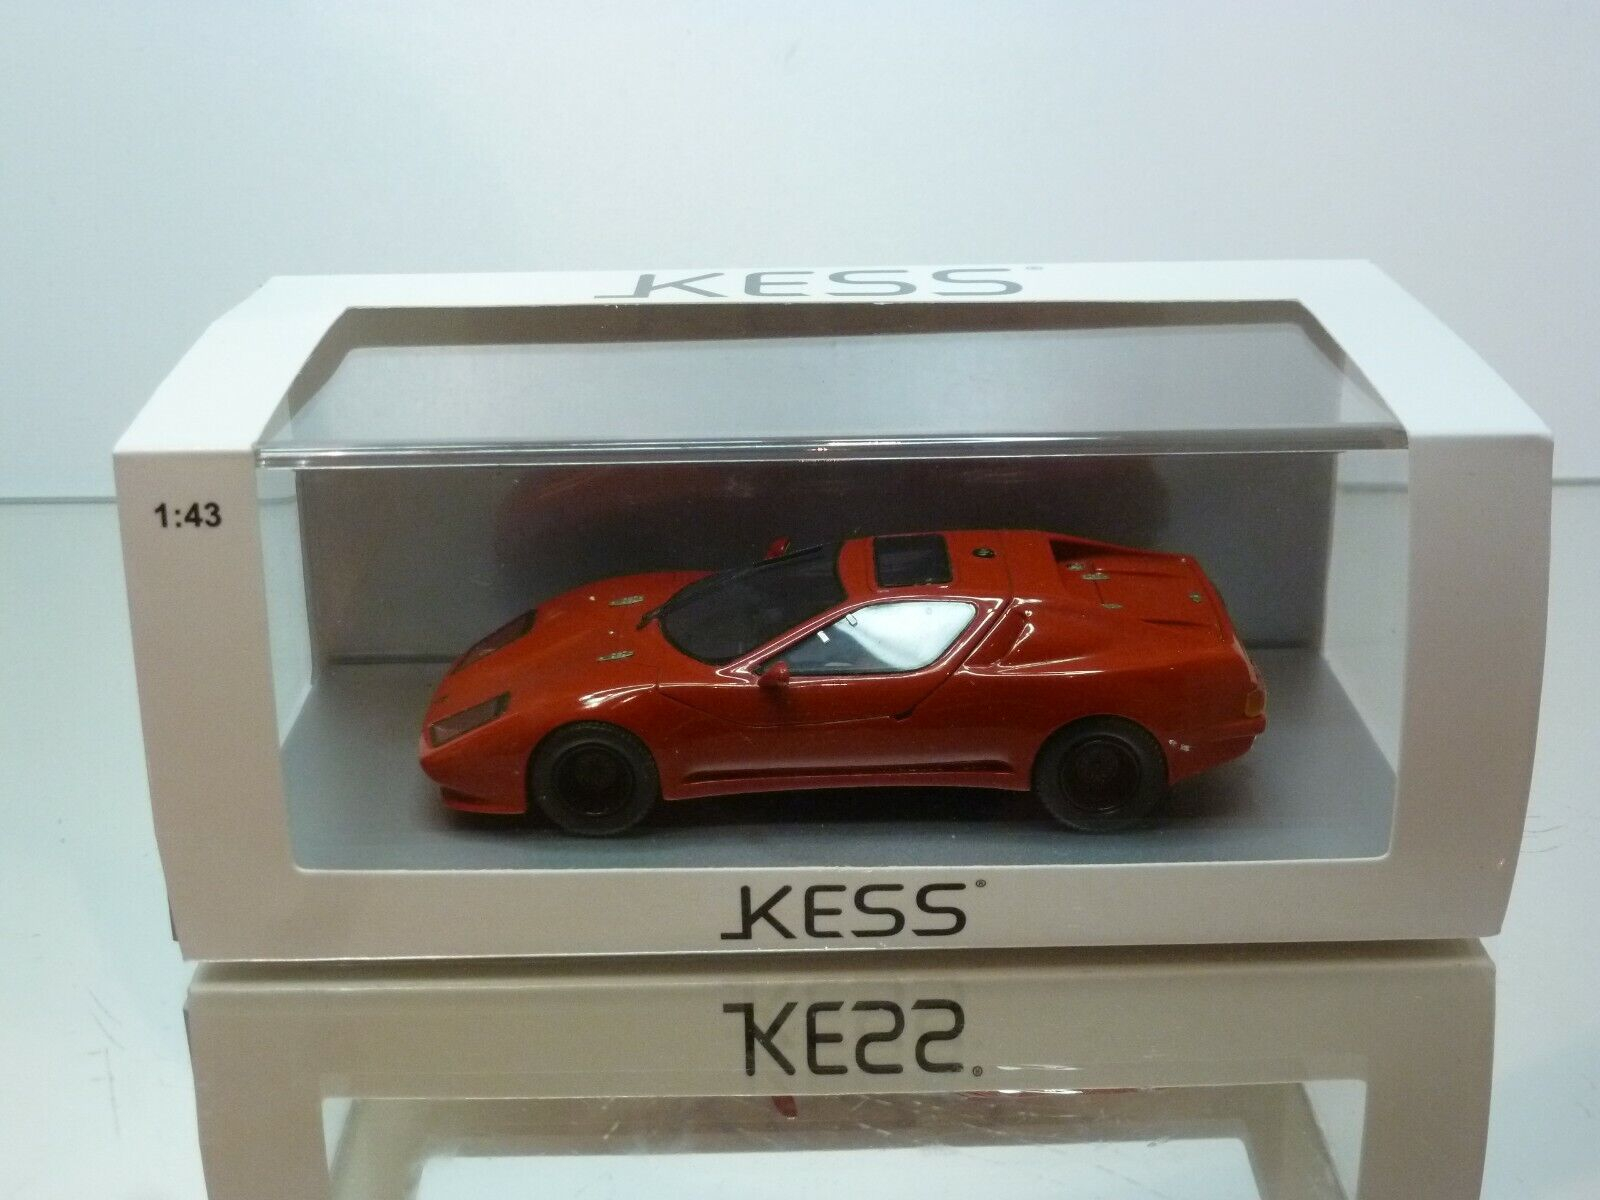 KESS PUMA GTV COUPE - rouge 1 43 - EXCELLENT CONDITION IN BOX